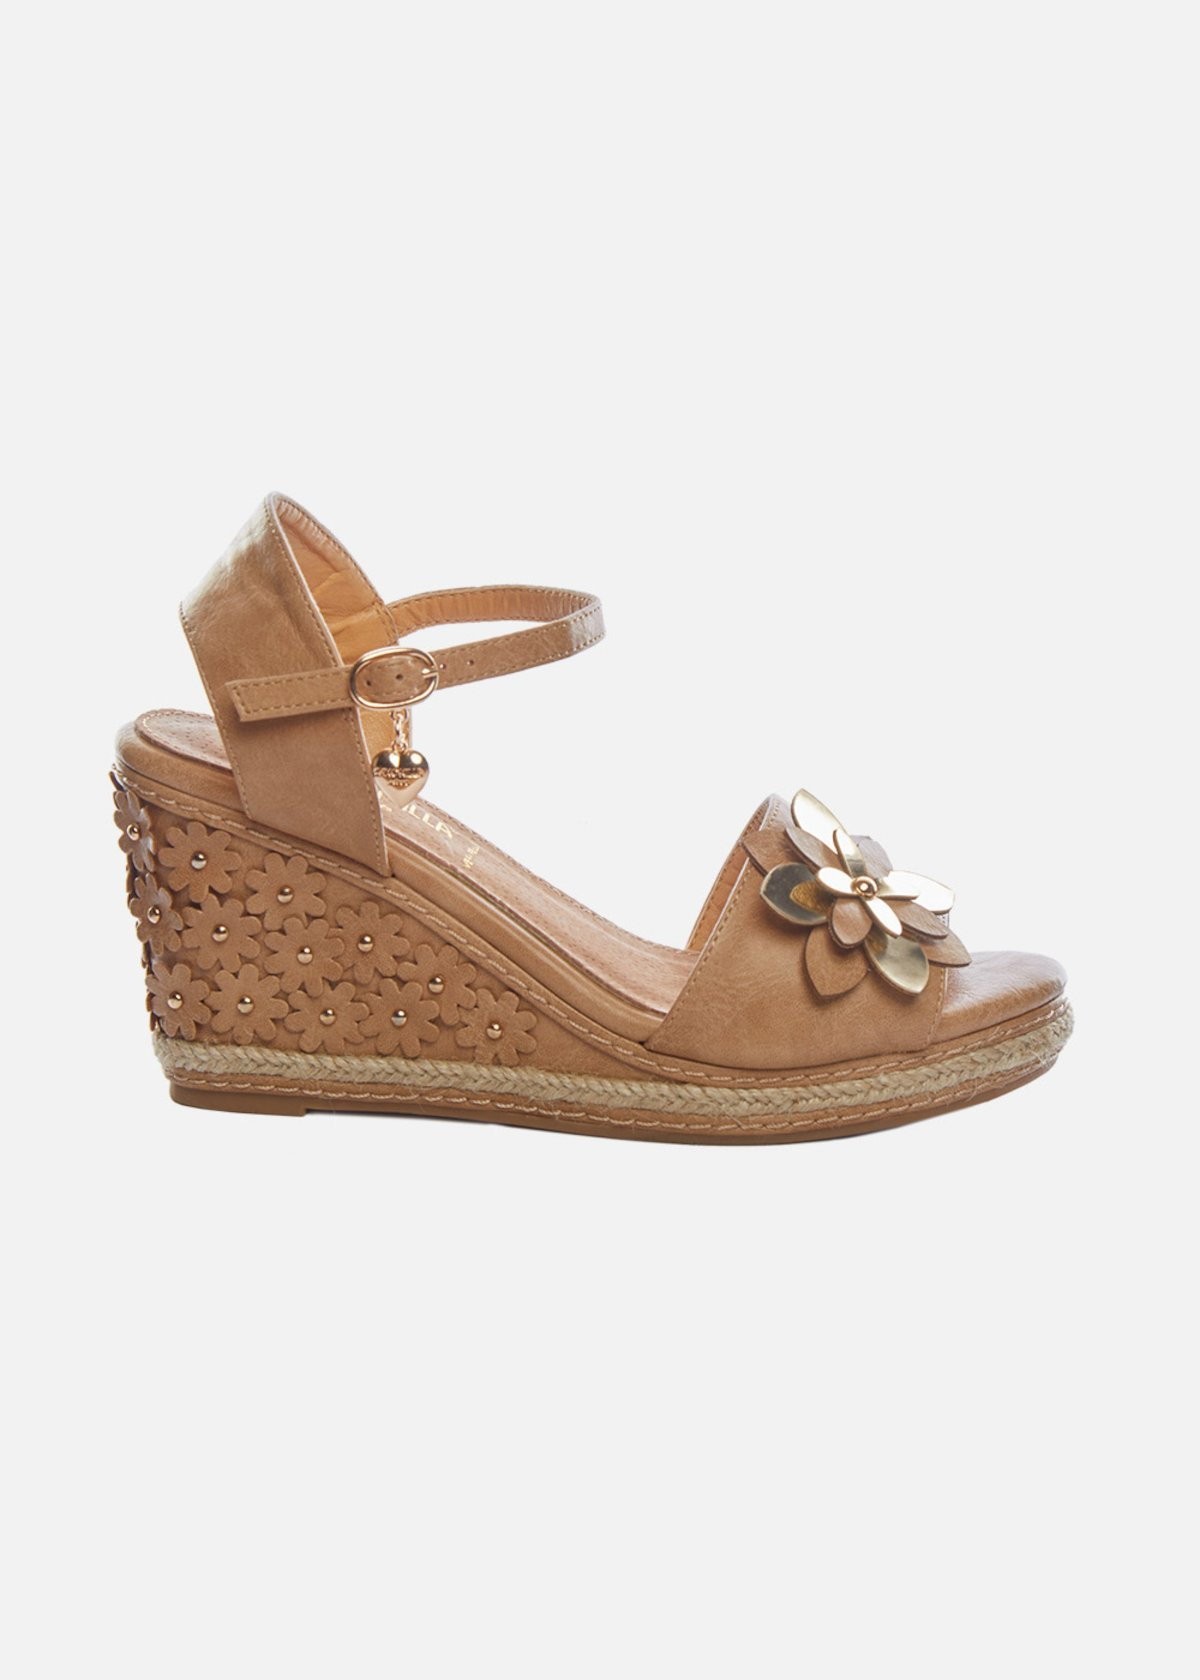 Sflora sandals with flower applications on the wedge